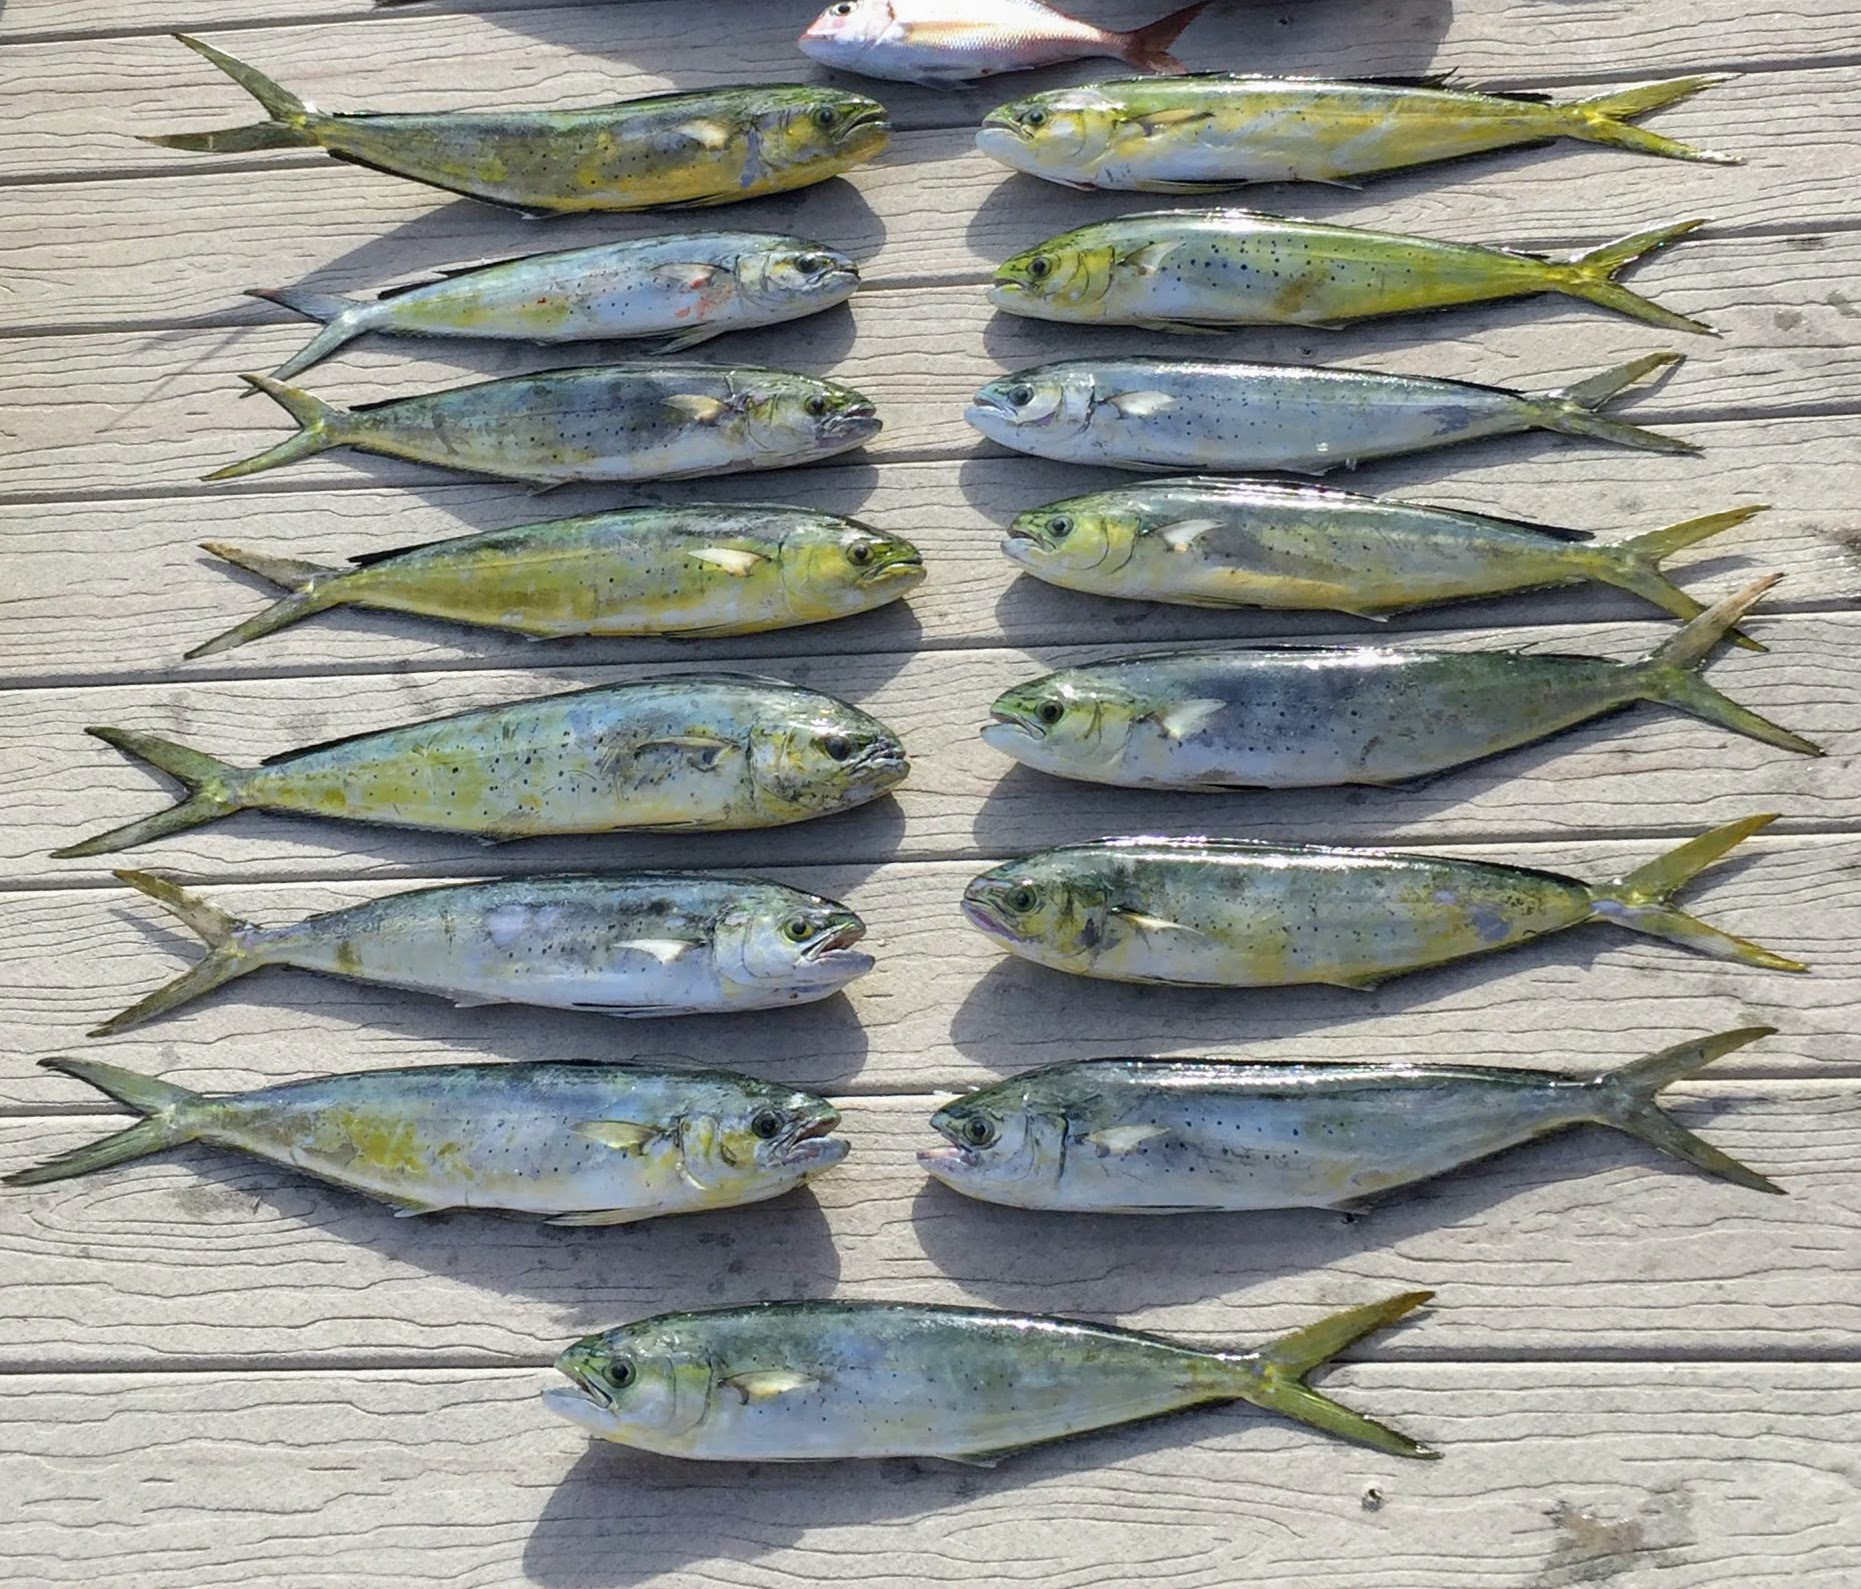 Several of these were caught on the 1 oz Minnow jig